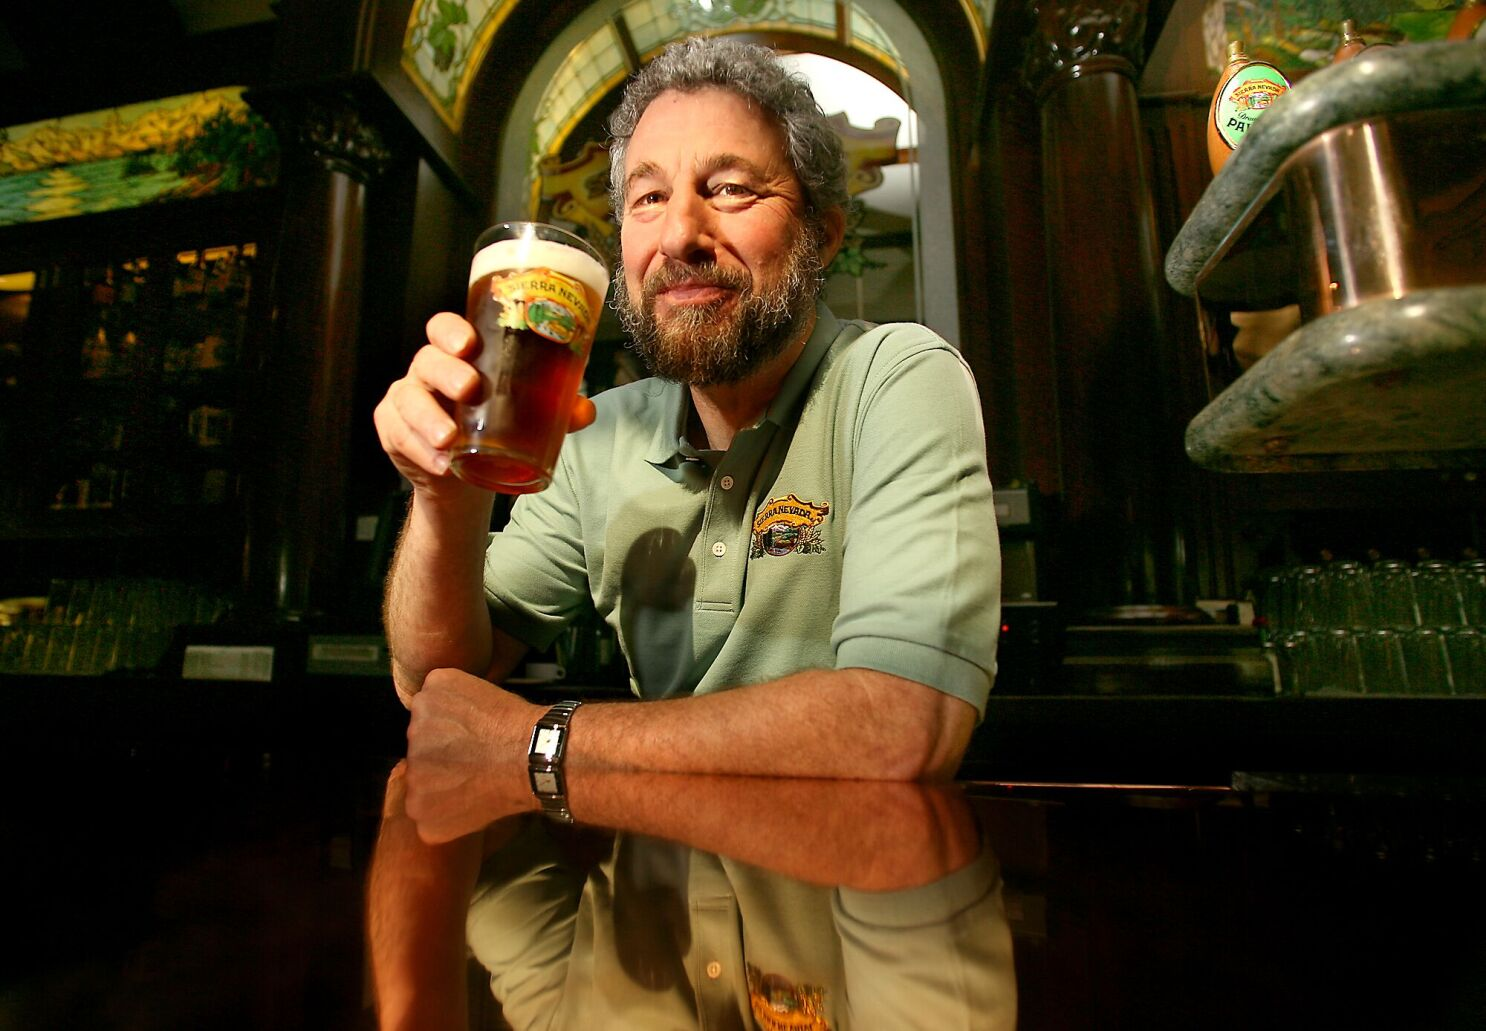 40 years ago, Ken Grossman created America's most influential ale